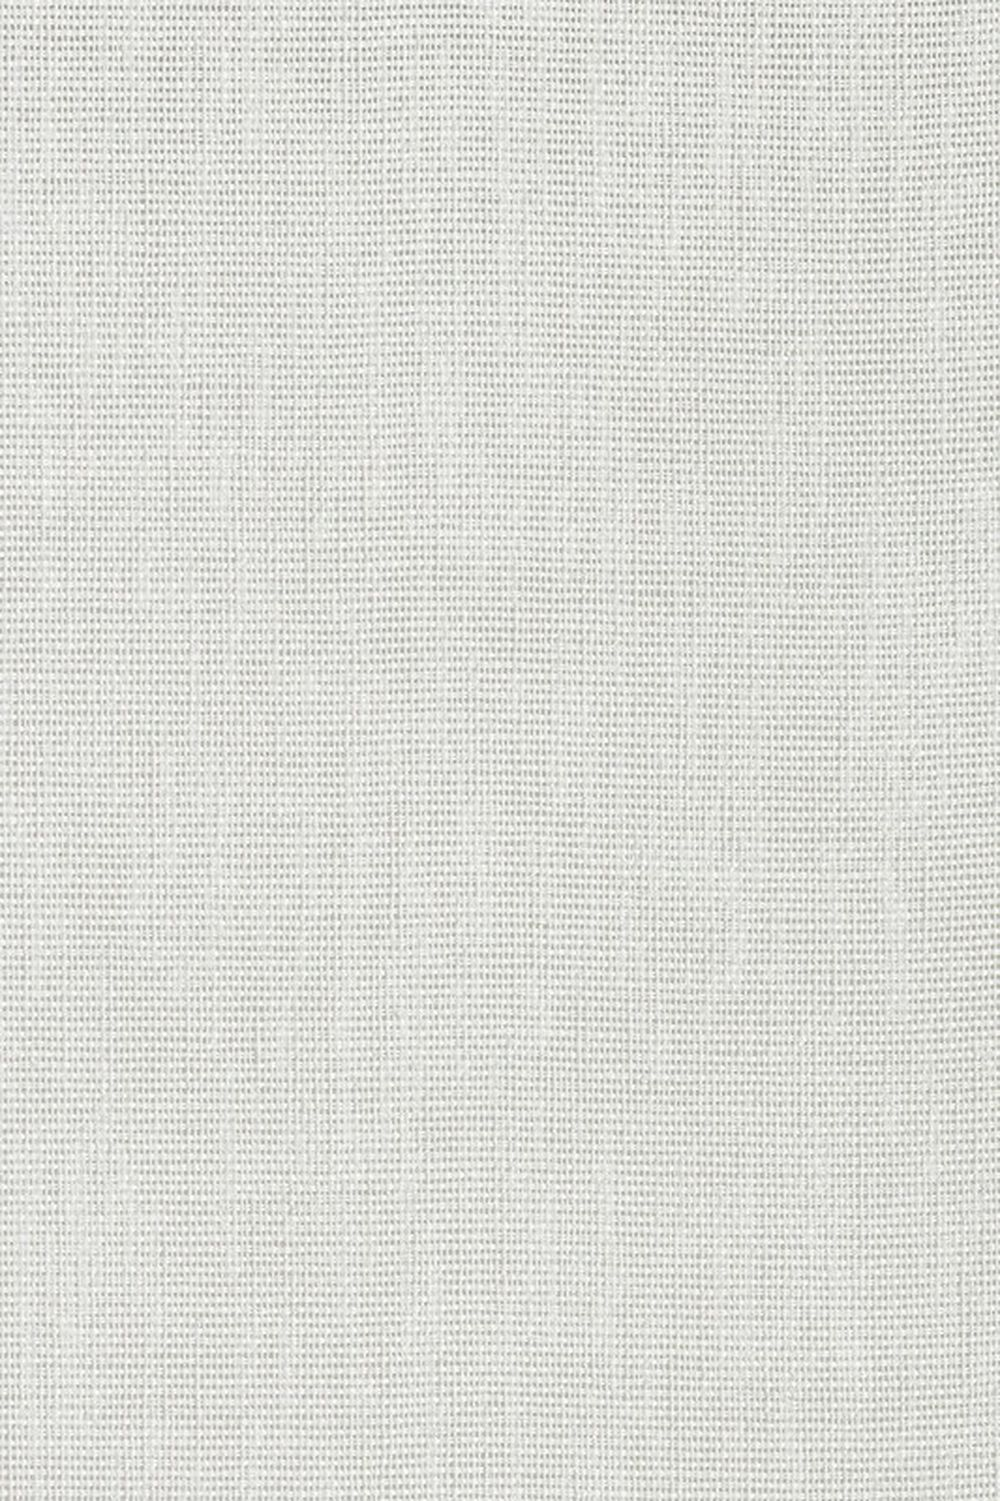 Photo of the fabric Axis FR * Ice swatch by Pegasus. Use for Sheer Curtains. Style of Plain, Sheer